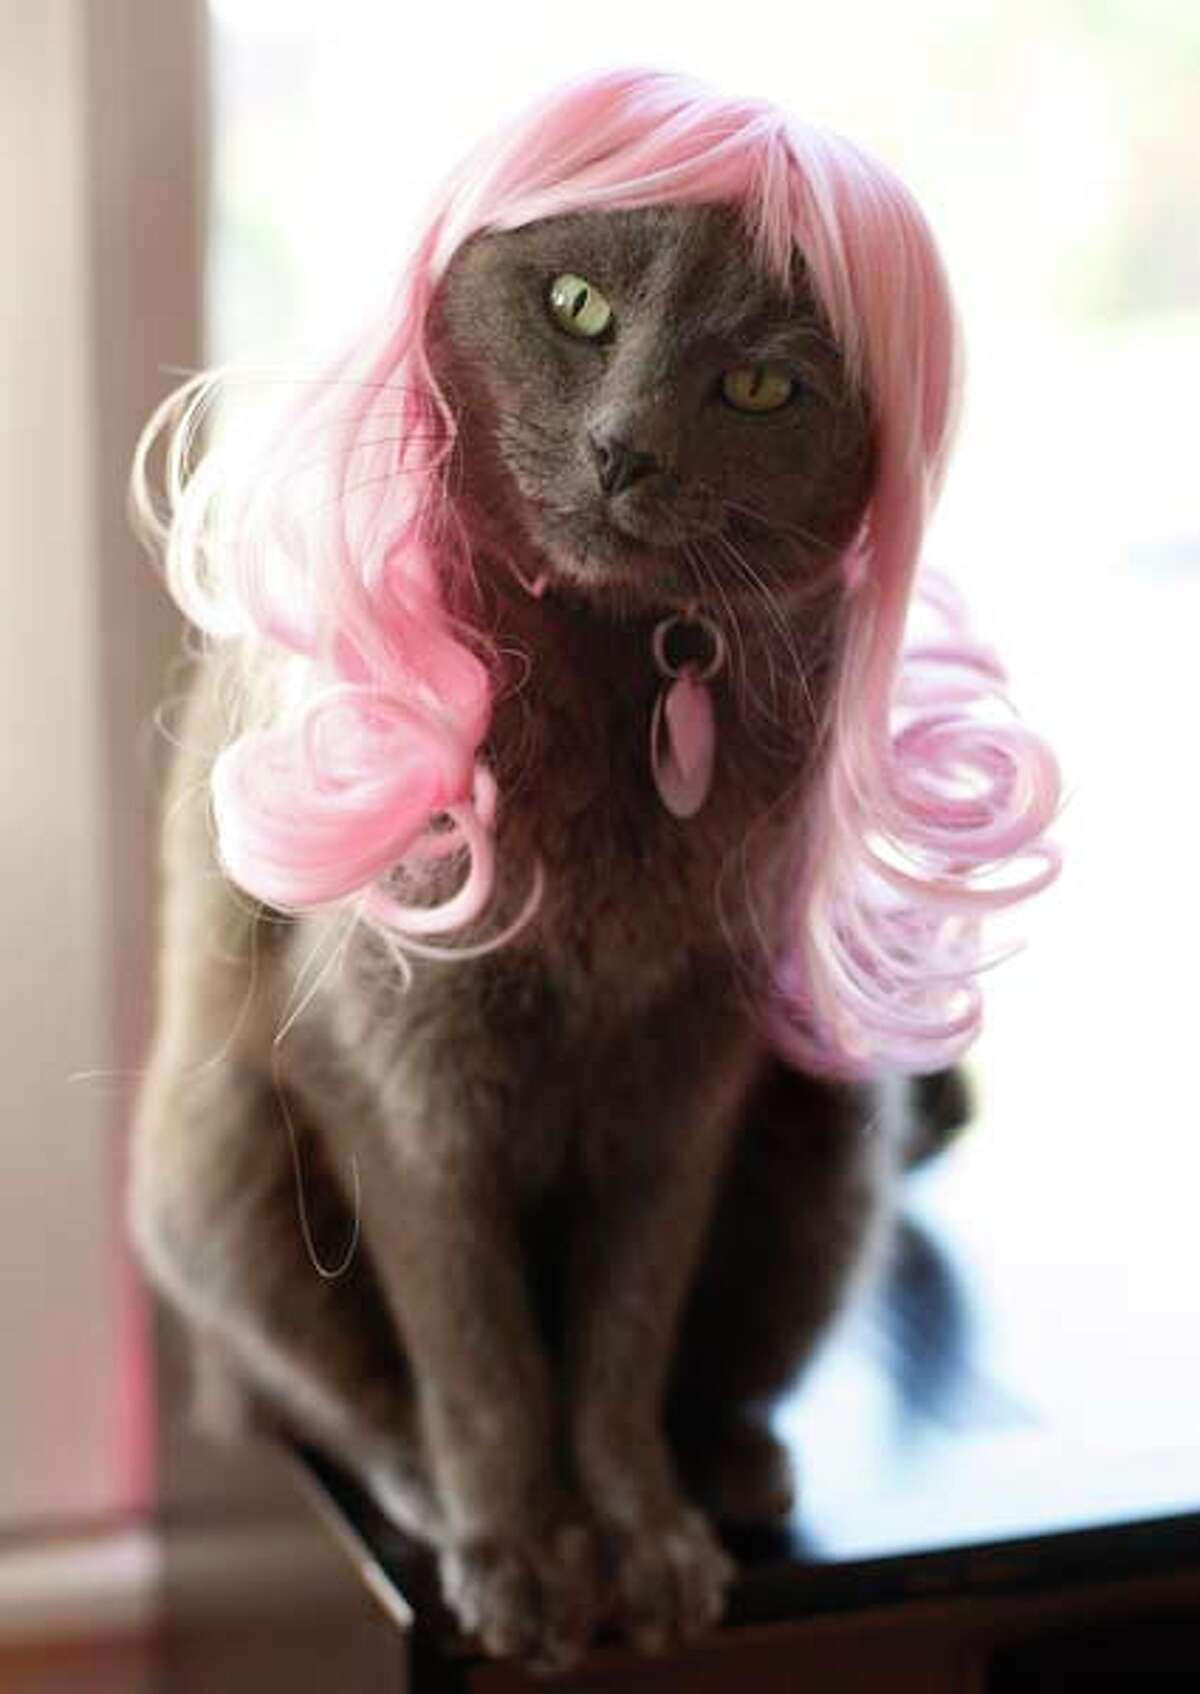 20 Cats In Costume For National Cat Day